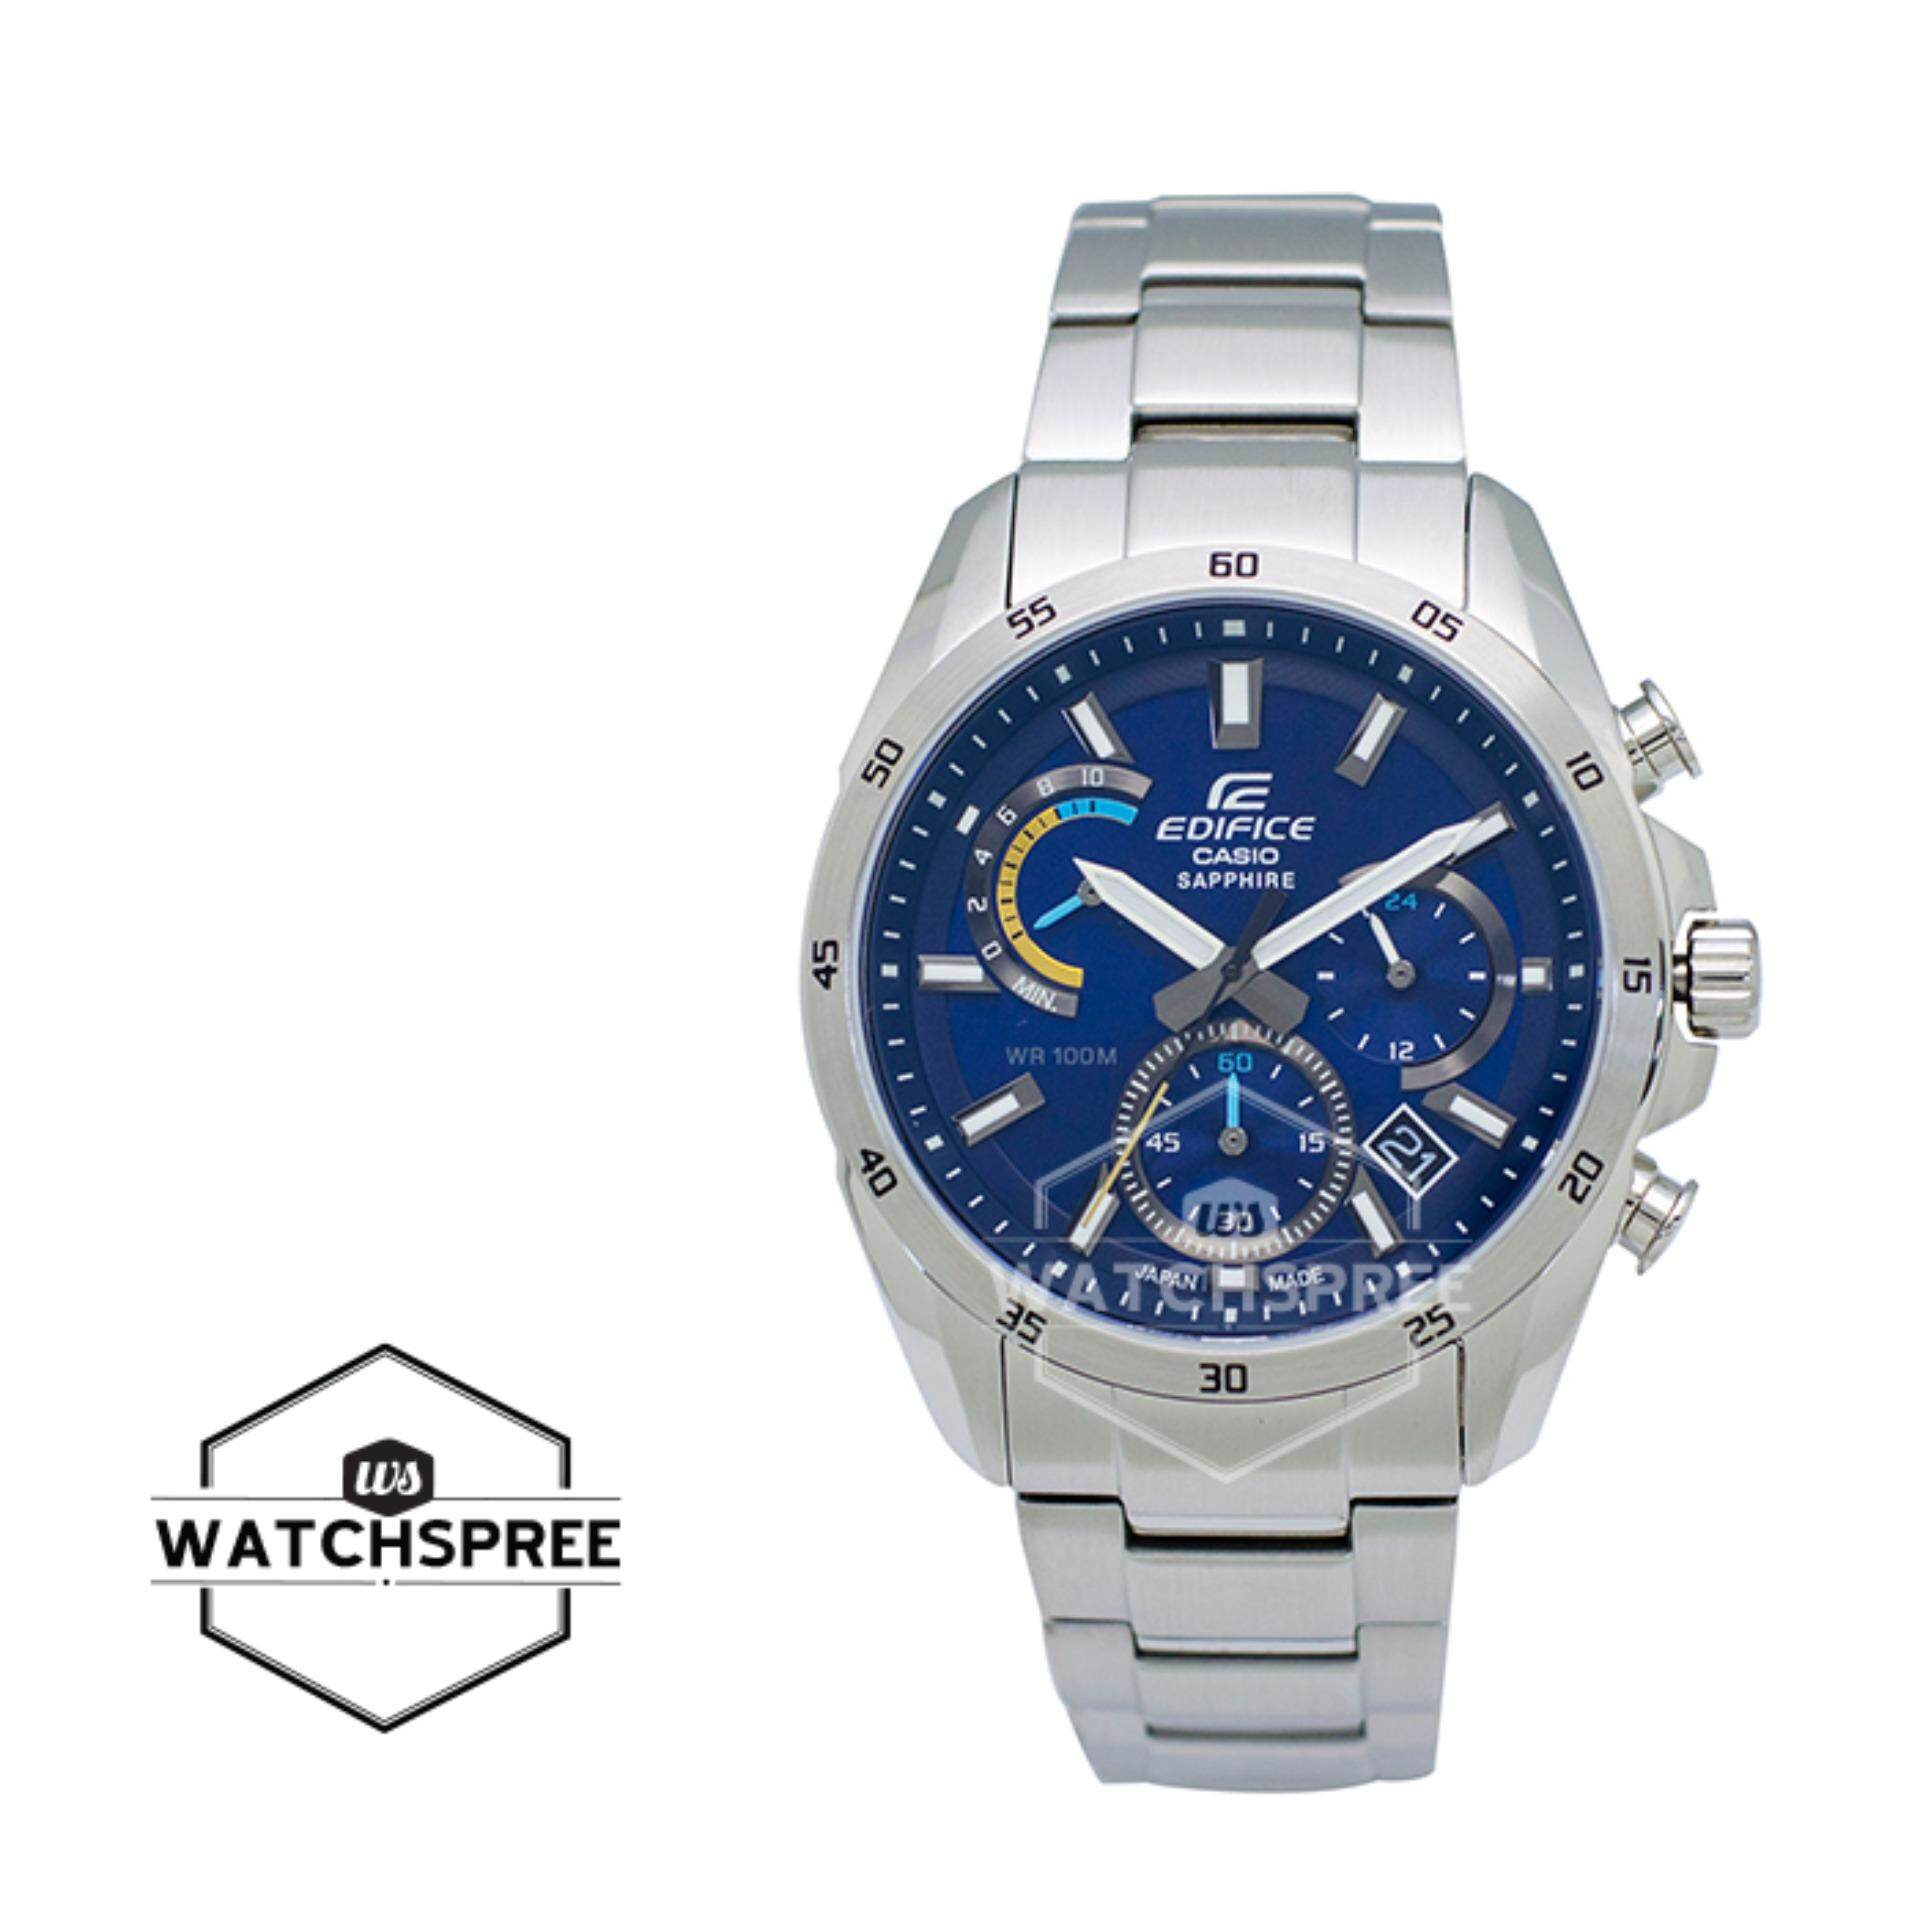 Casio Edifice Watches Price In Malaysia Best Efr 529d 1a2vdf Jam Tangan Pria Stainless Steel Black Japan Made Chronograph Band Watch Efb510jd 2a Efb